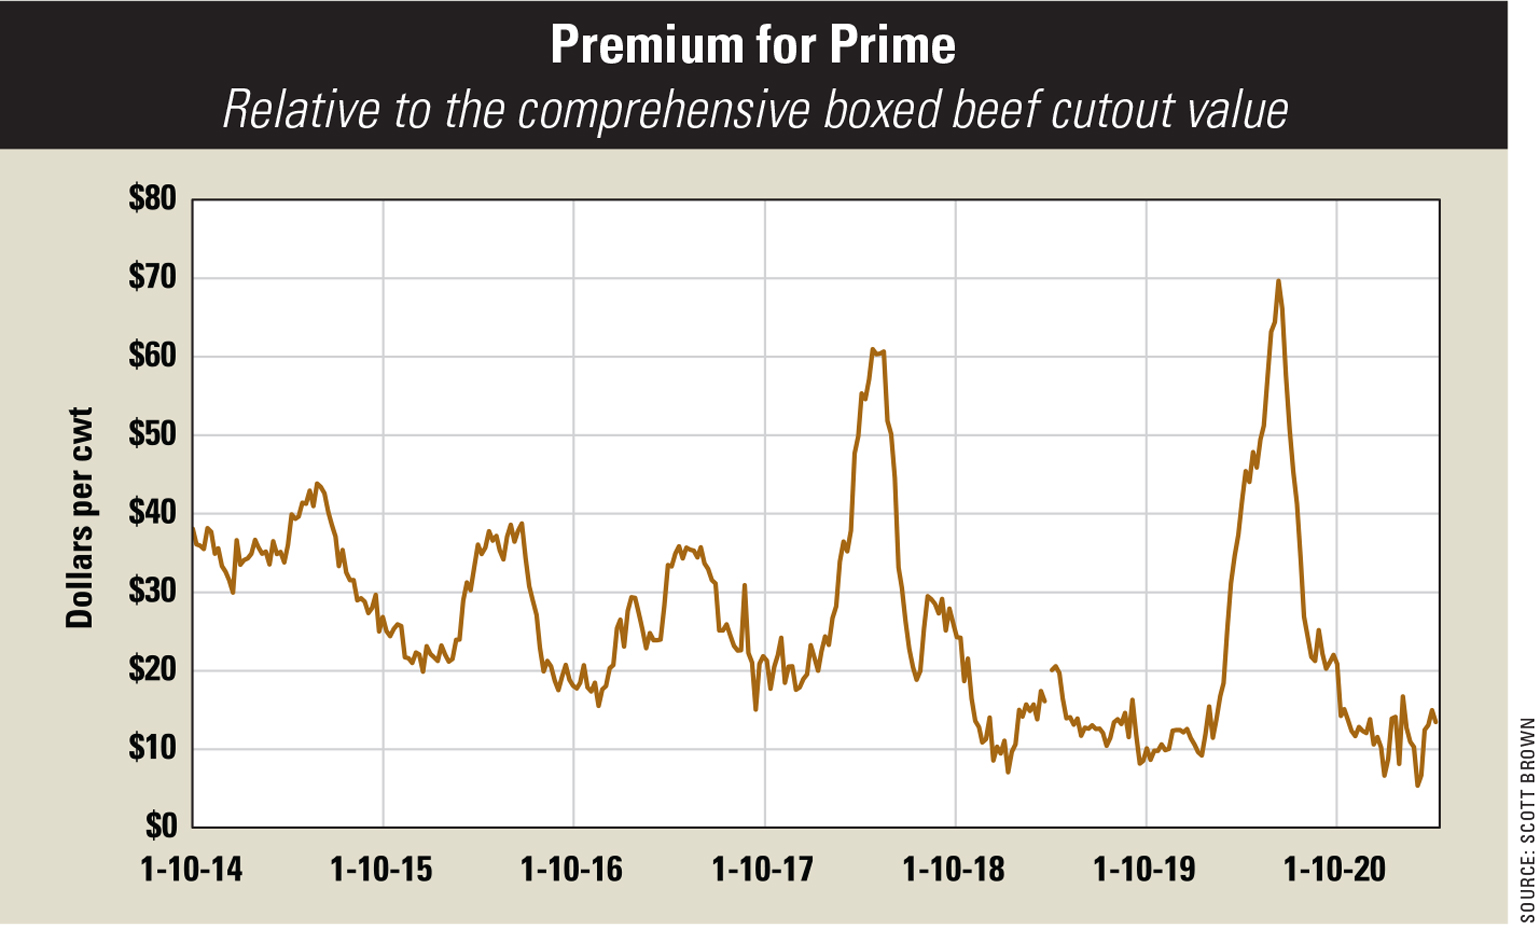 A graph illustrating the the rise and fall of premium for prime beef from 2012 to 2020